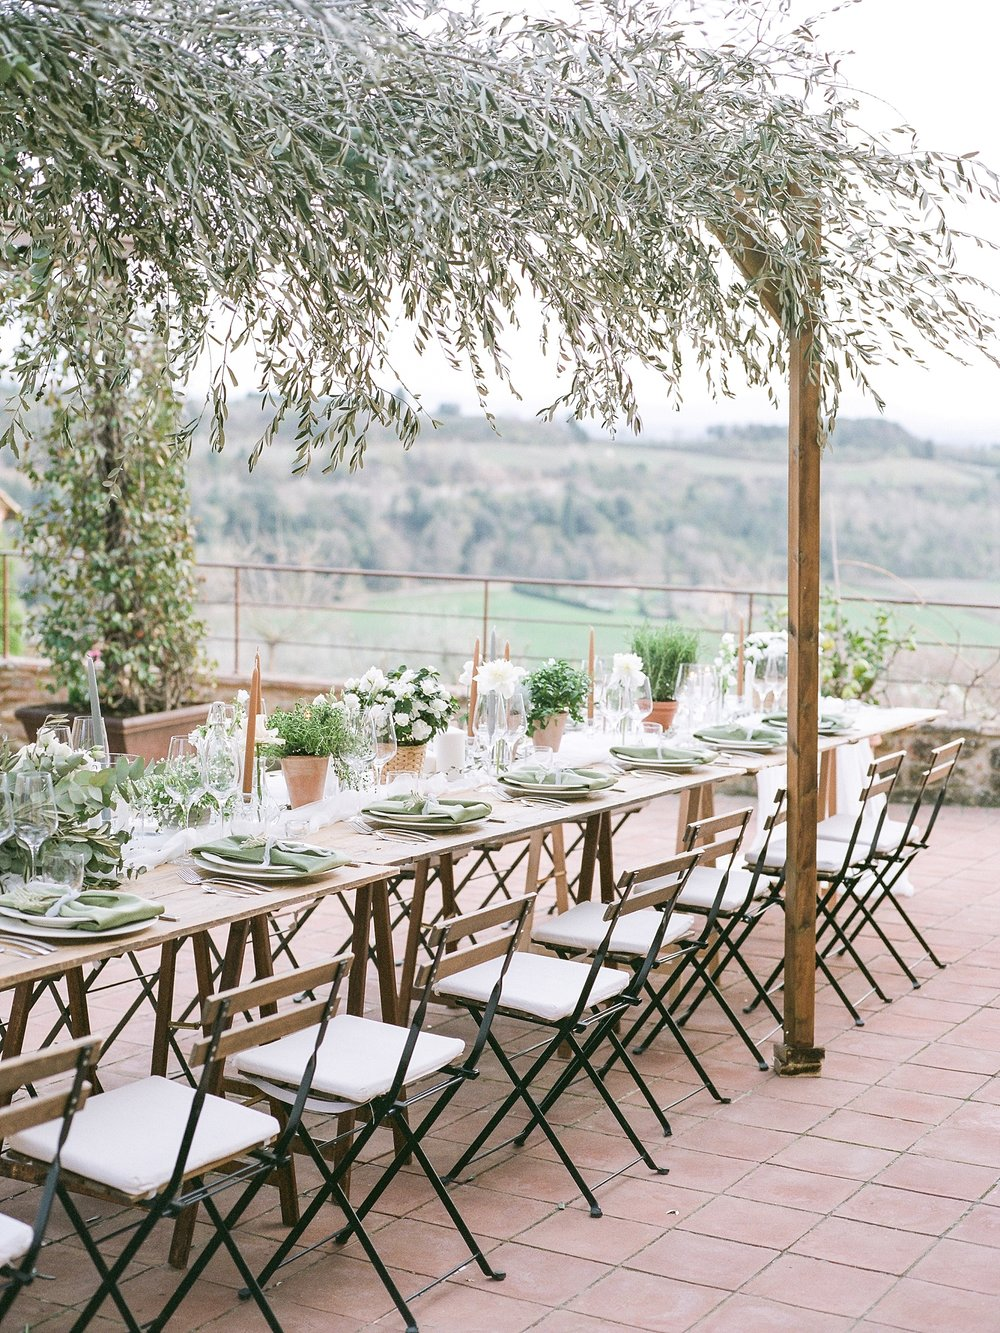 All White Destination Wedding in the Hills of Tuscany Italy at Estate Borgo Petrognano by Kelsi Kliethermes Photography_0069.jpg